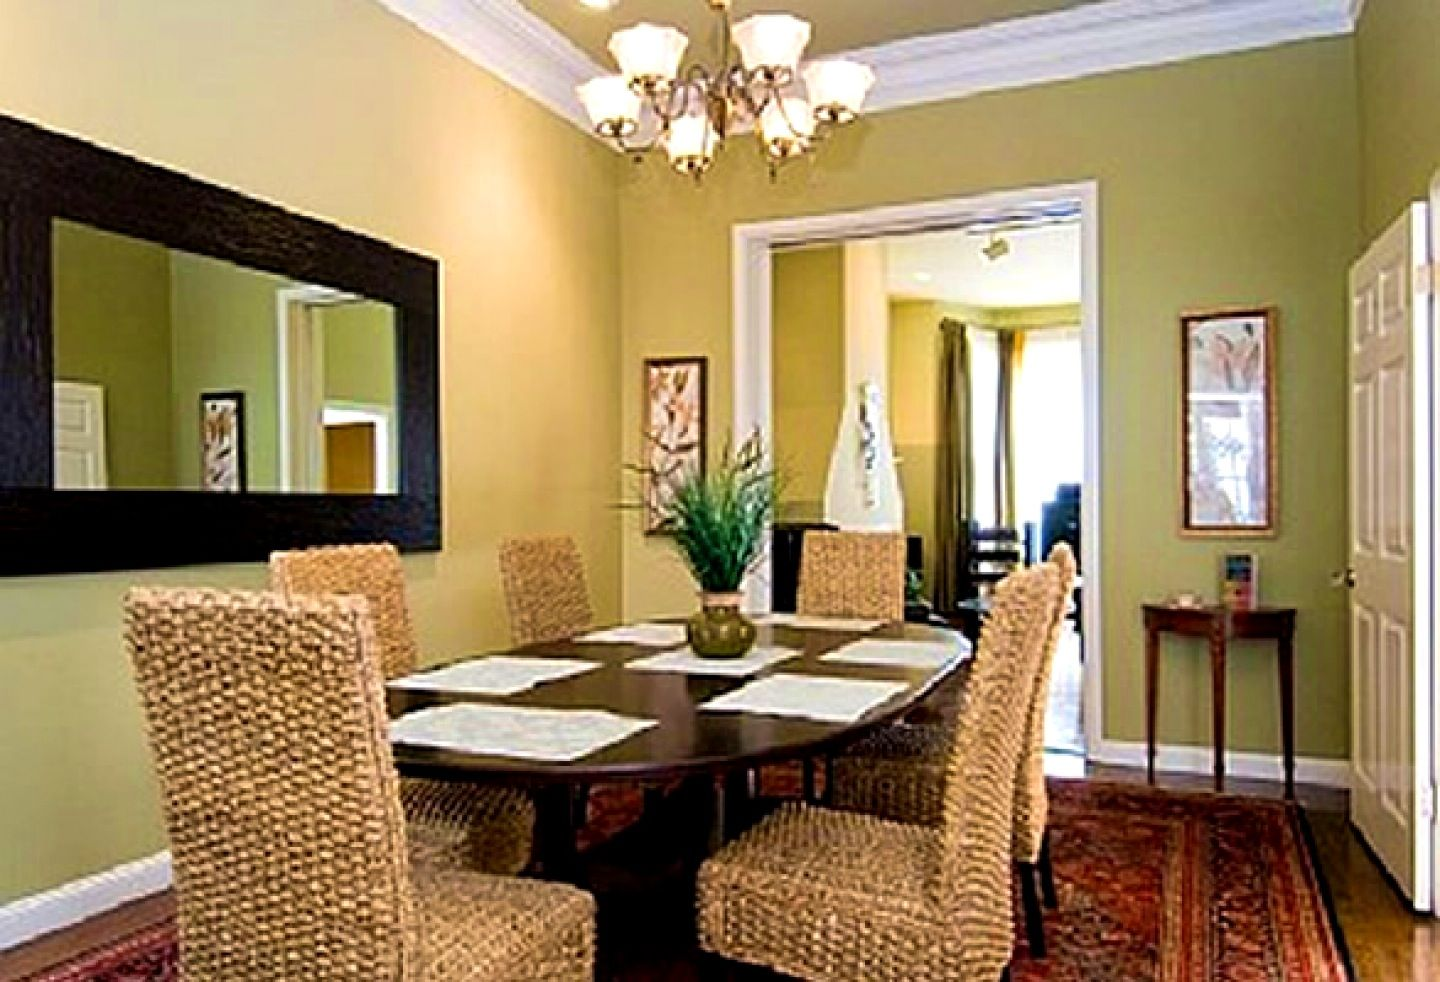 Décor For Formal Dining Room Designs Decor Around The World Dining Room Colors Dining Room Paint Colors Dining Room Wall Color